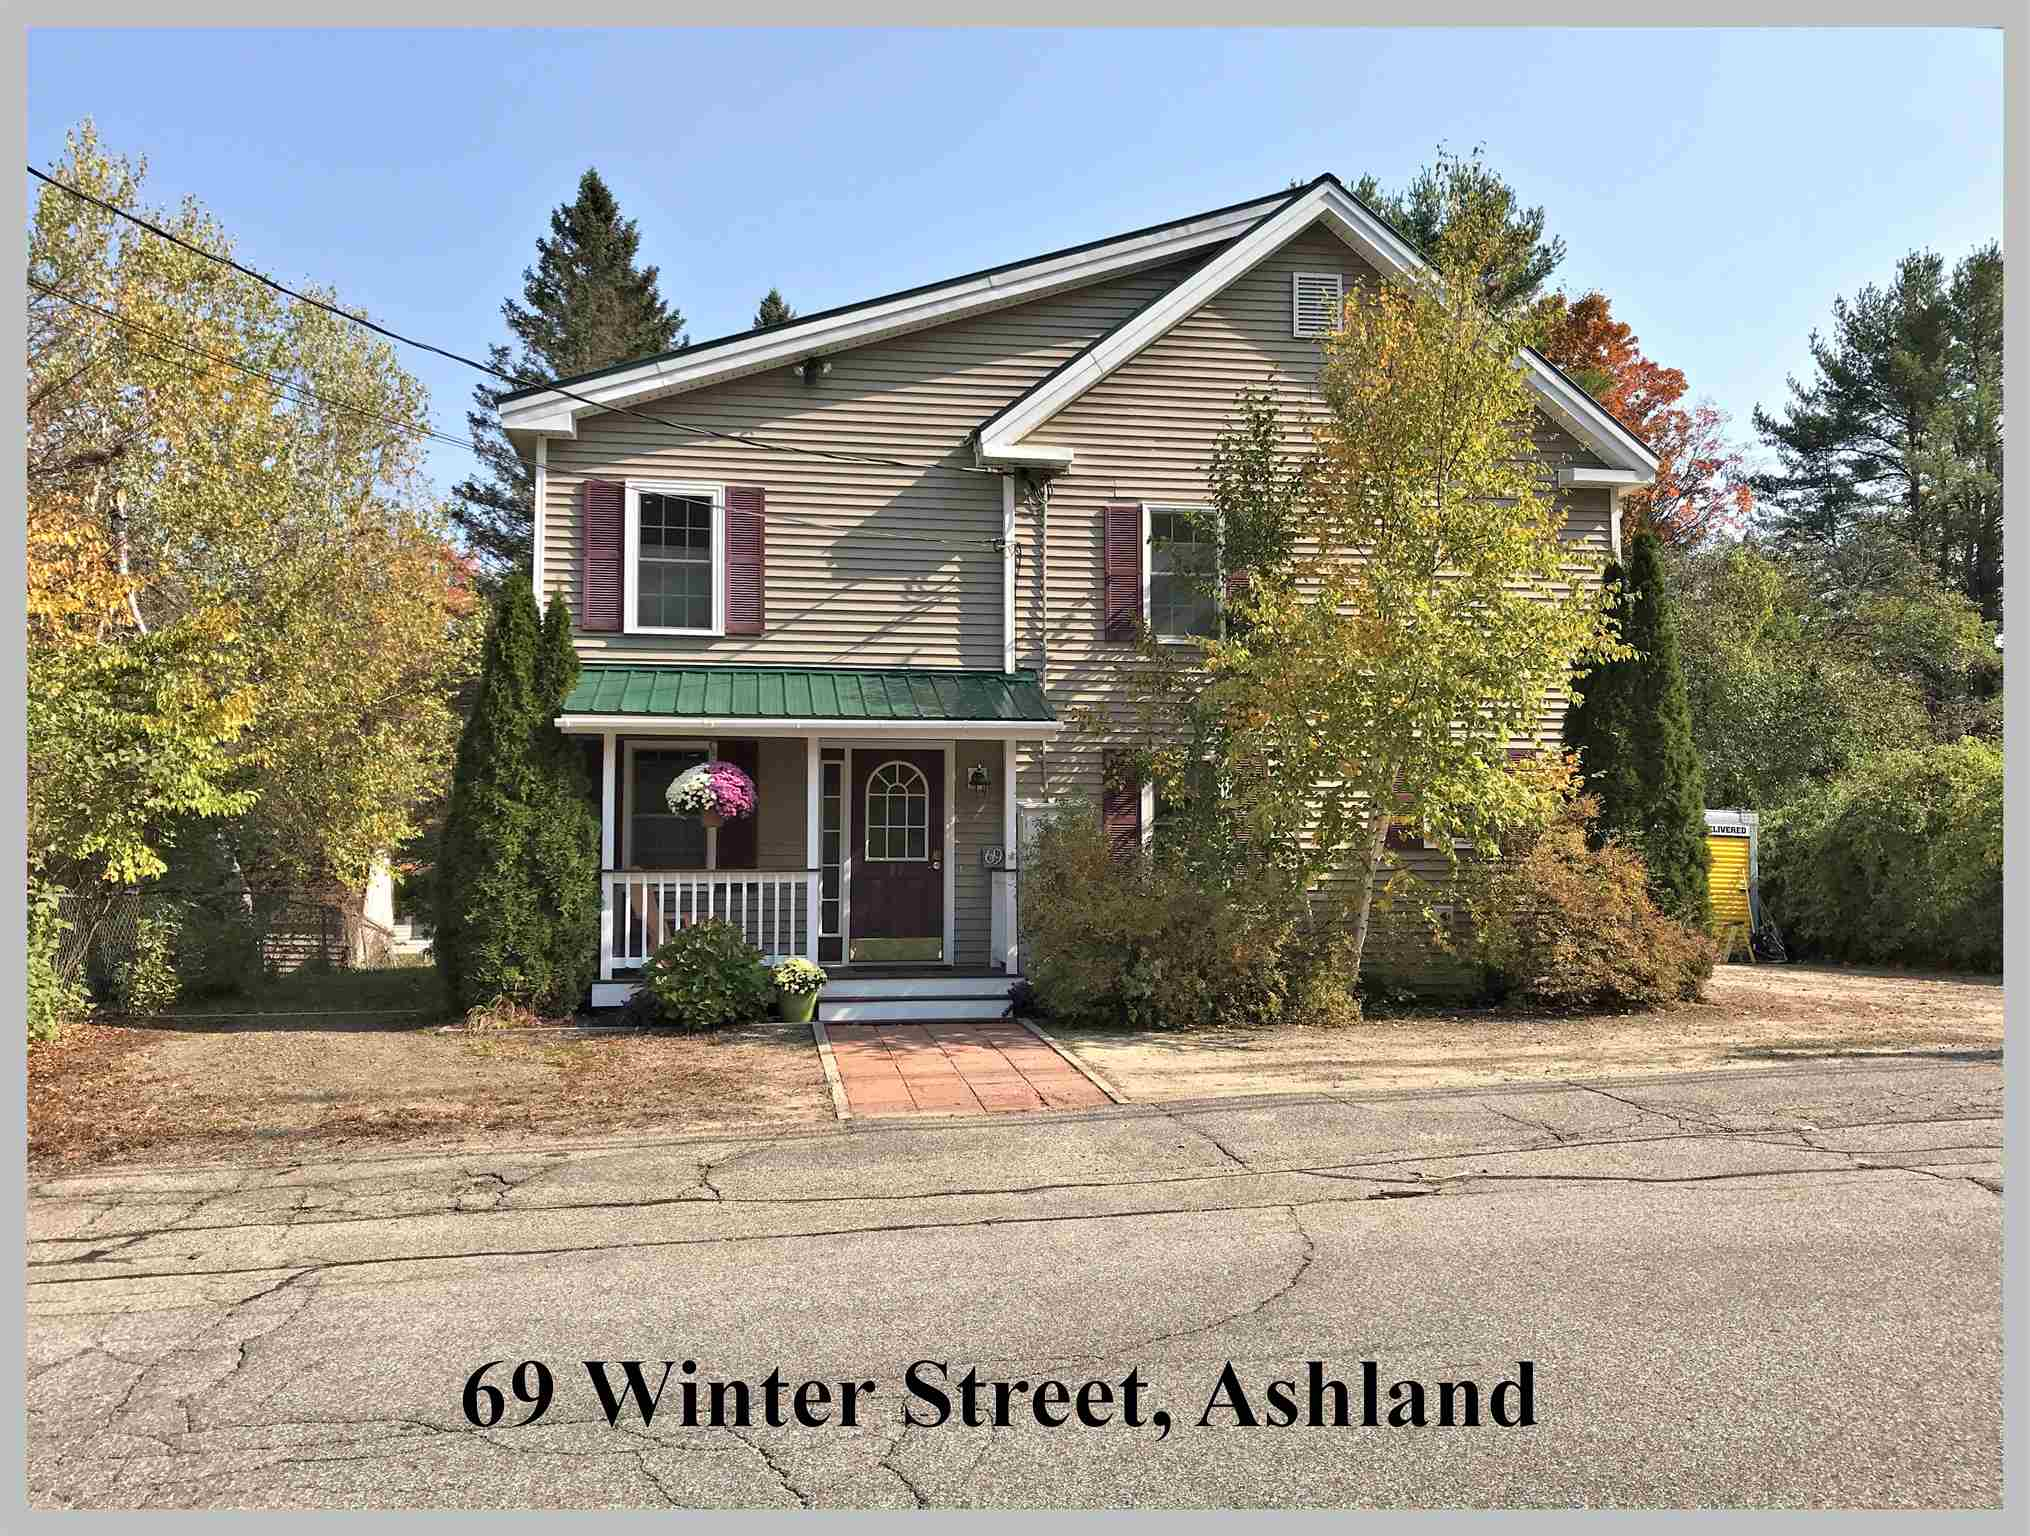 MLS 4834649: 69 Winter Street, Ashland NH